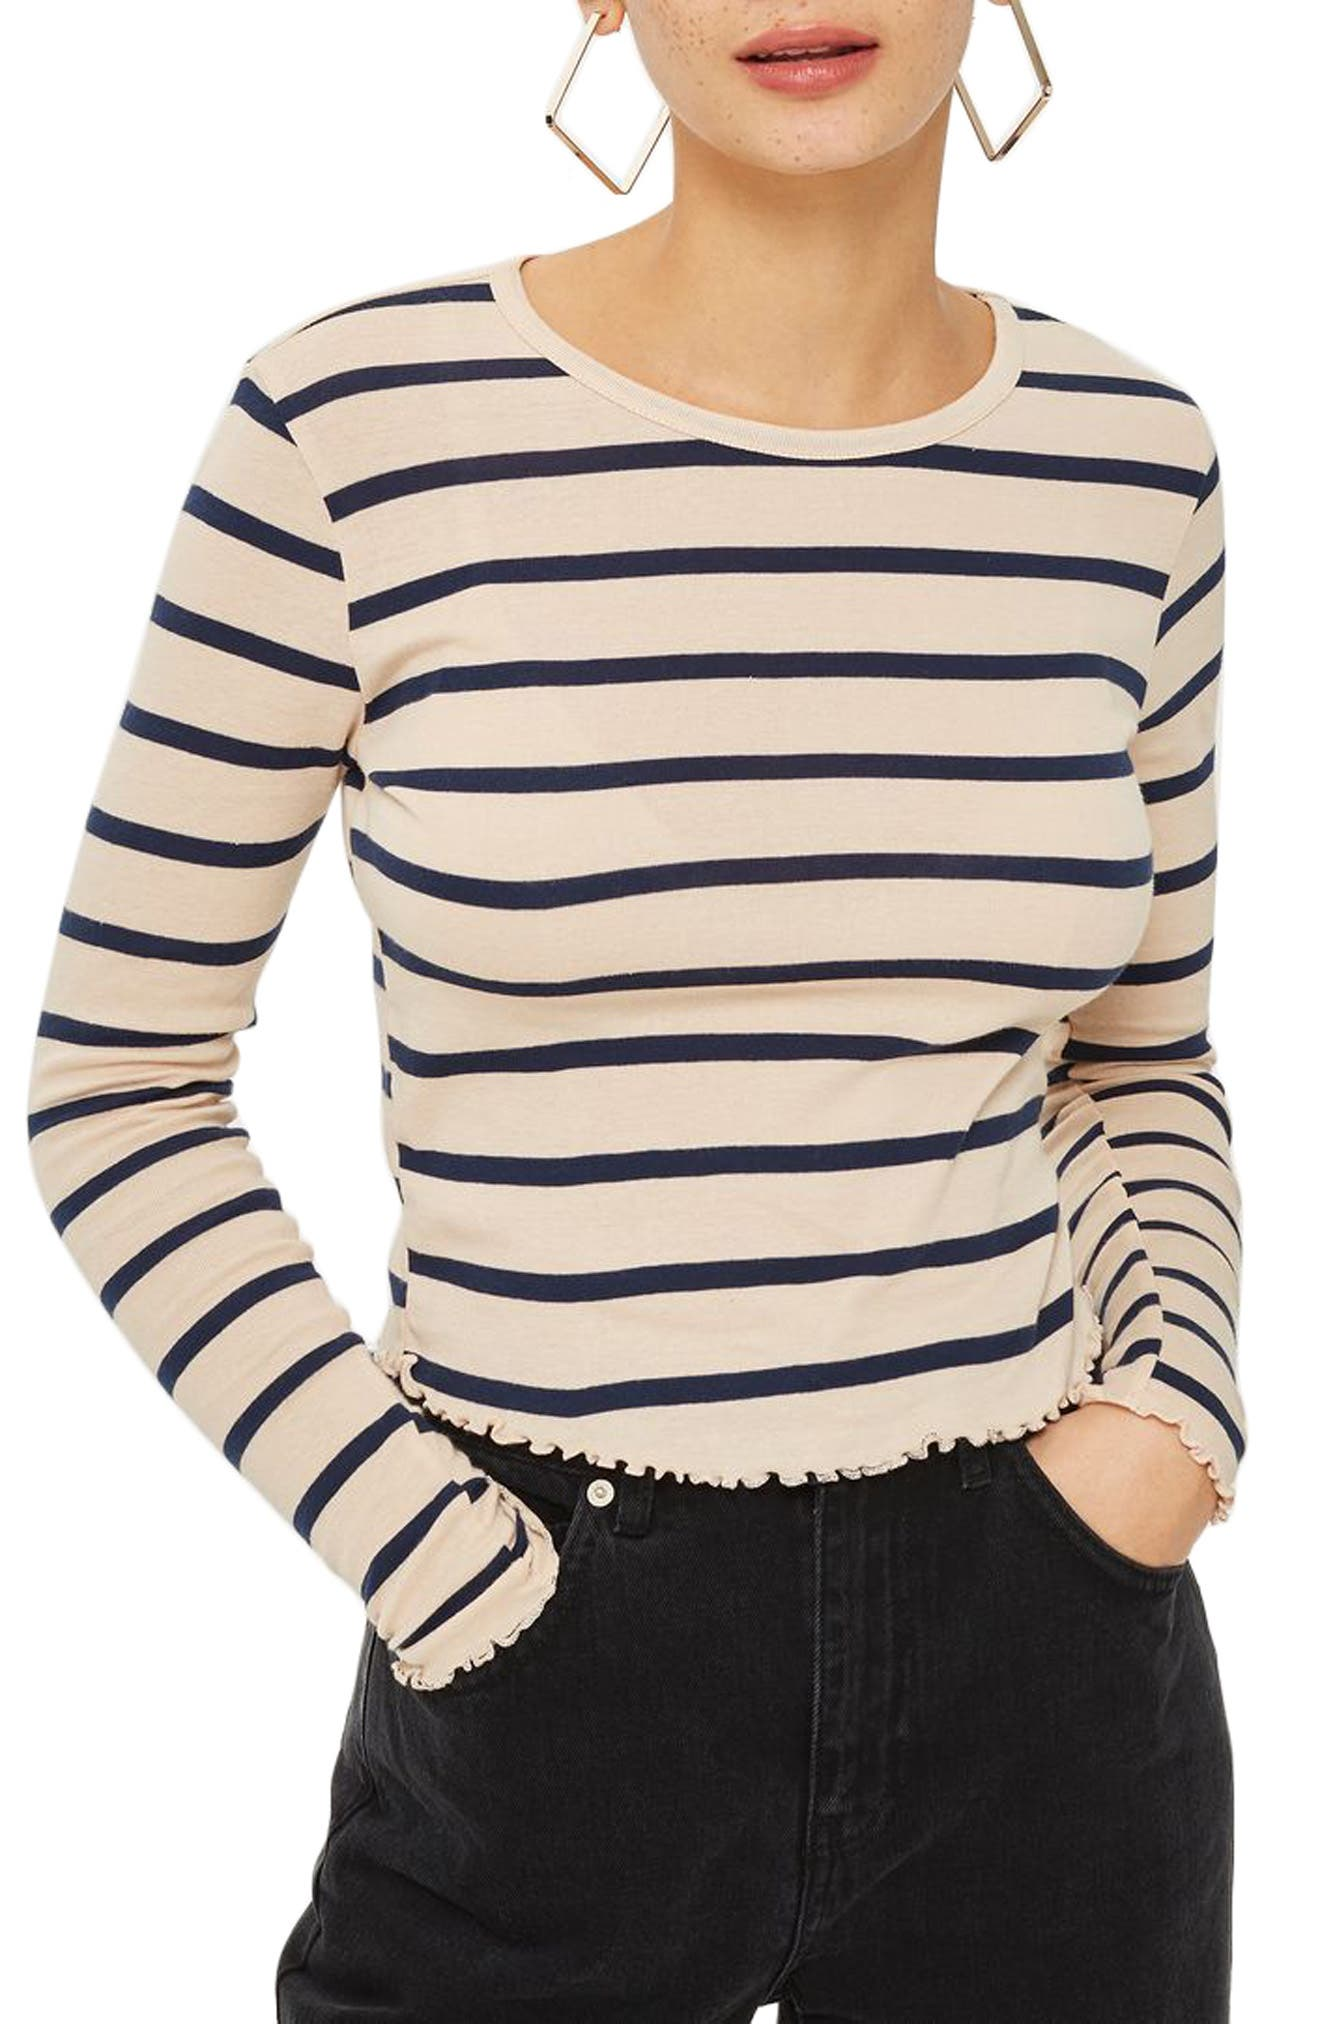 Main Image - Topshop Stripe Lettuce Hem Crop Top (Regular & Petite)